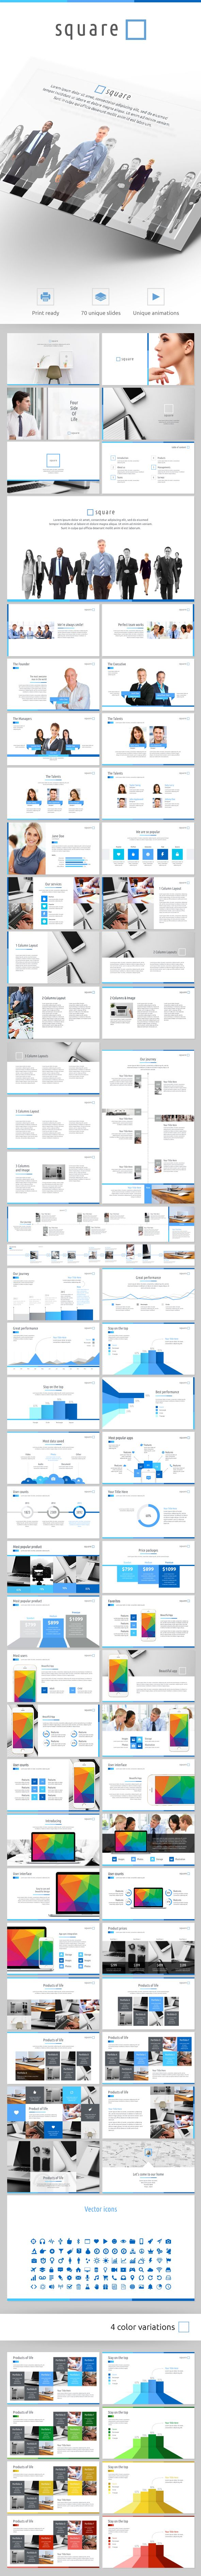 Square Keynote Template. Download here: http://graphicriver.net/item/square-keynote-template/16244984?ref=ksioks